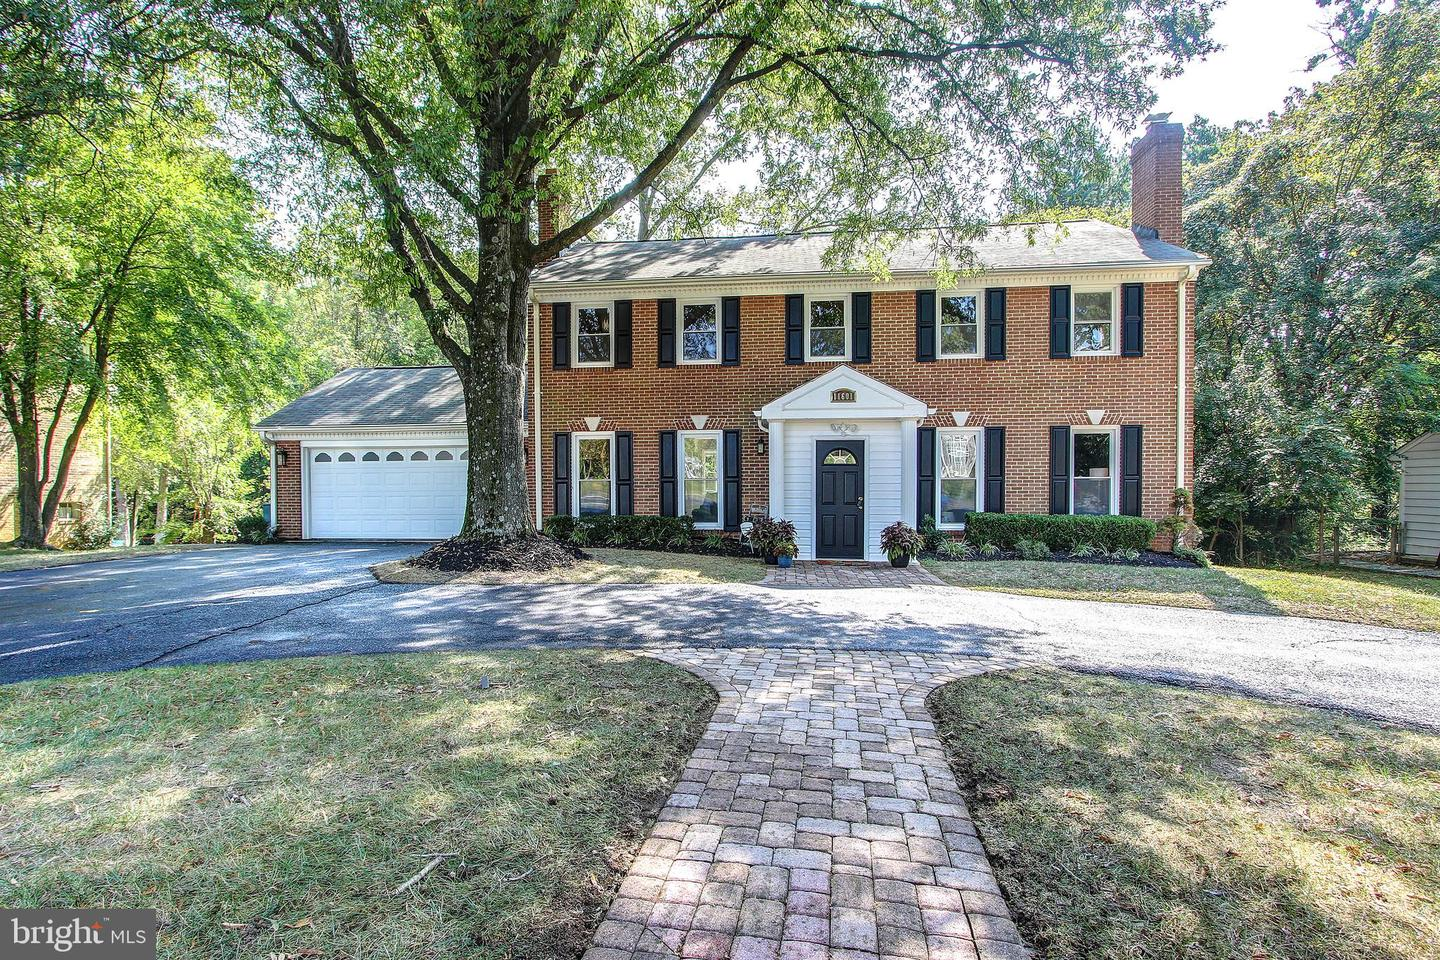 11601 FALLS ROAD, POTOMAC, Maryland